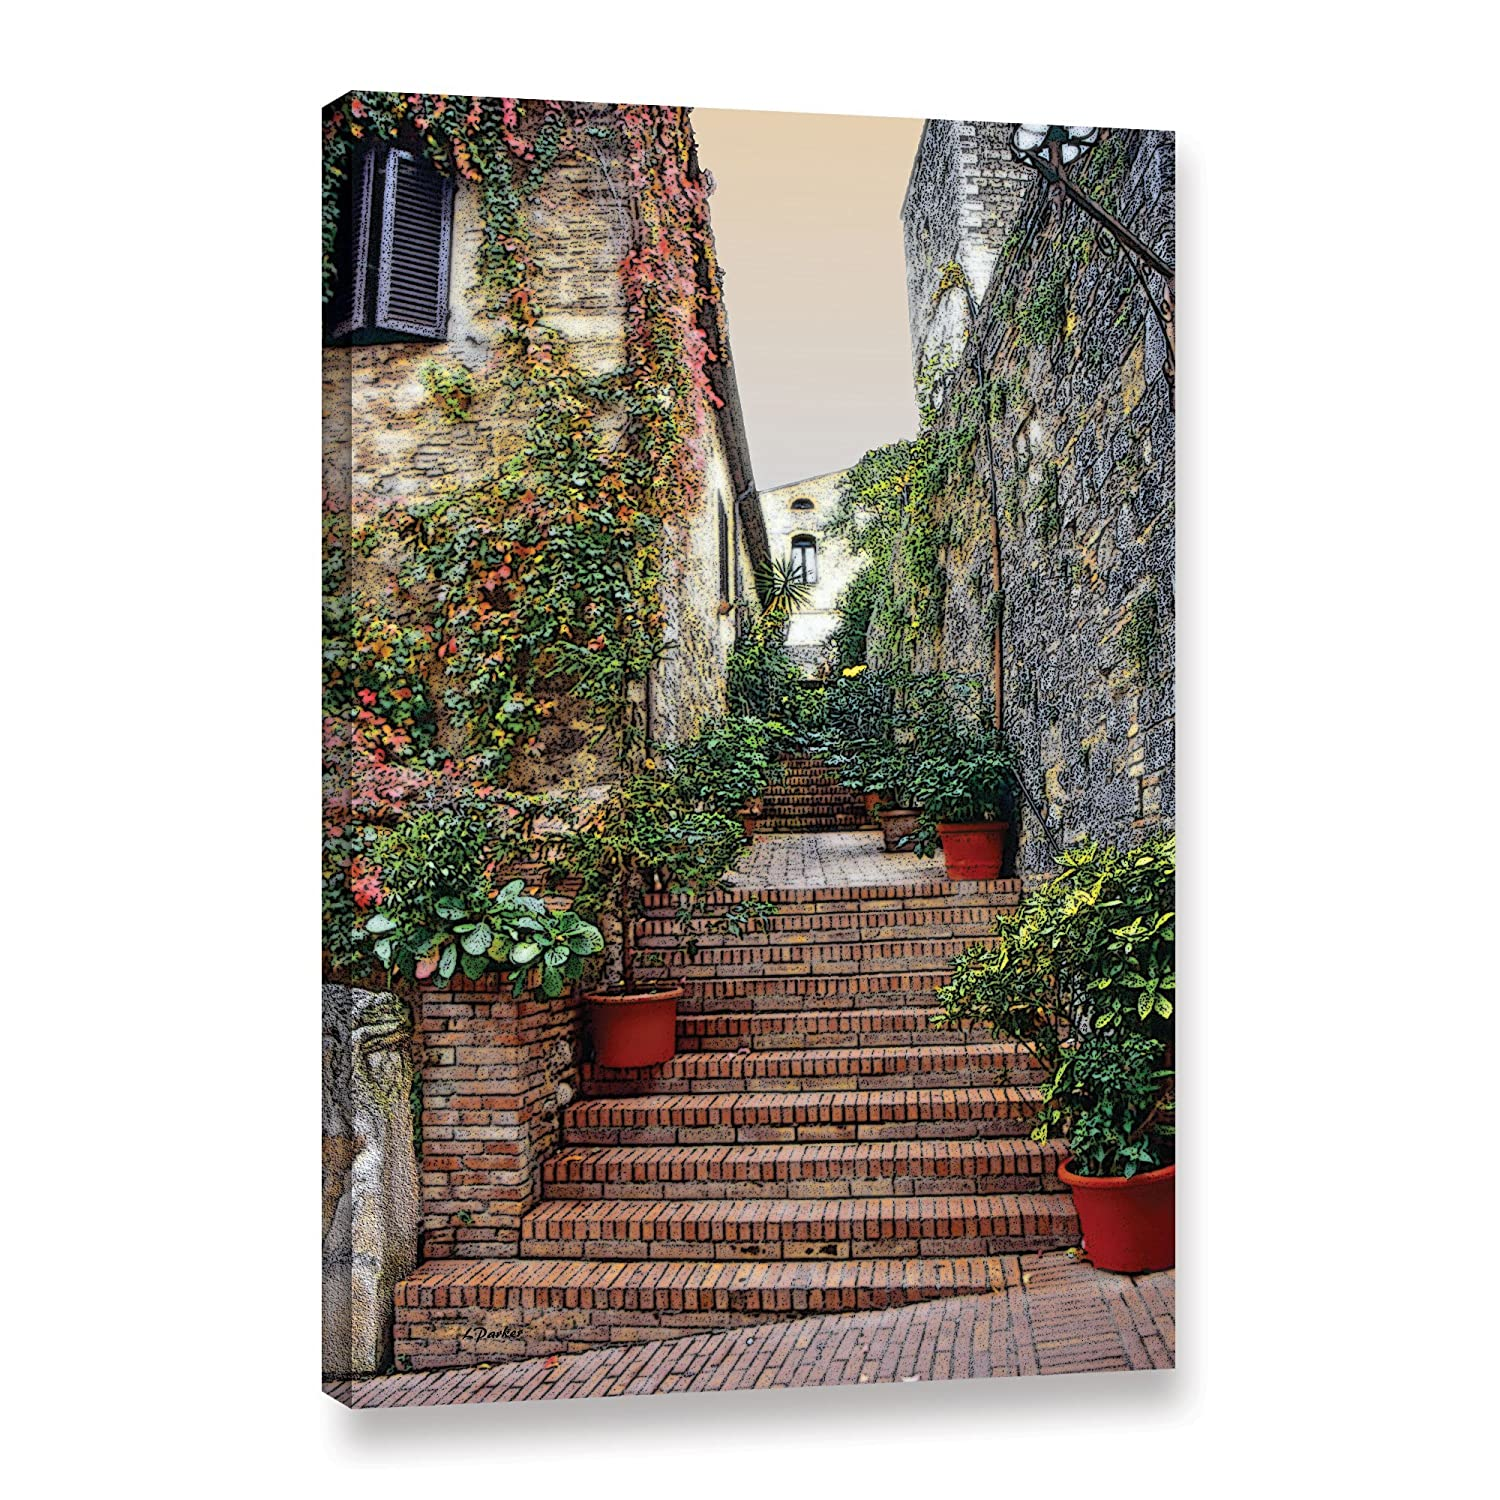 16 x 24 ArtWall Linda Parkers San Gimignano-Potted Steps Gallery Wrapped Canvas